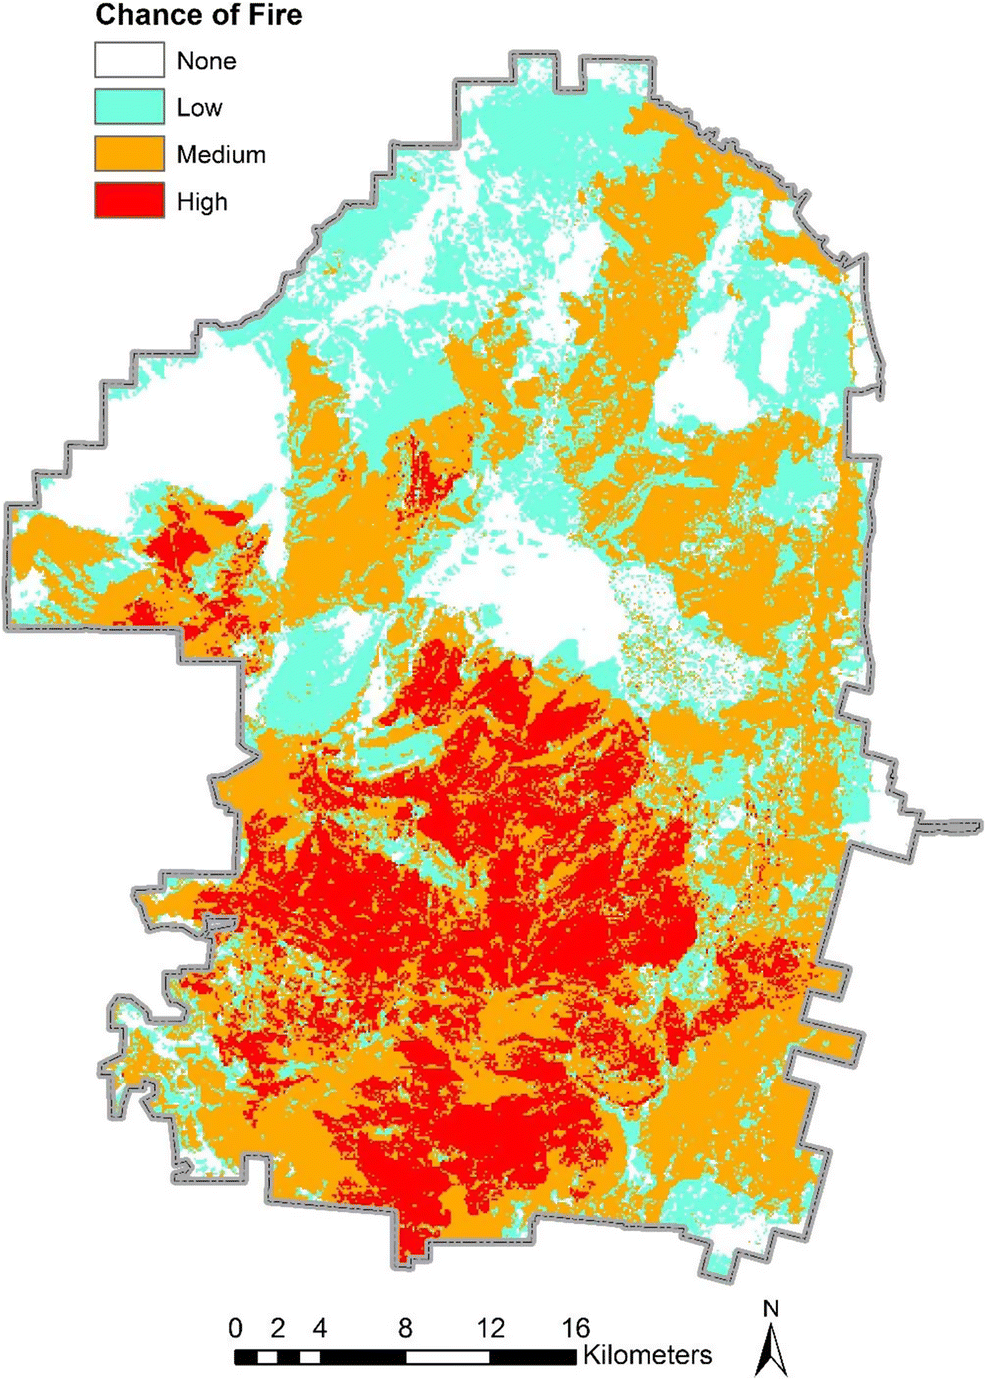 Evaluation of Ve ation Fire Dynamics in the Okefenokee National